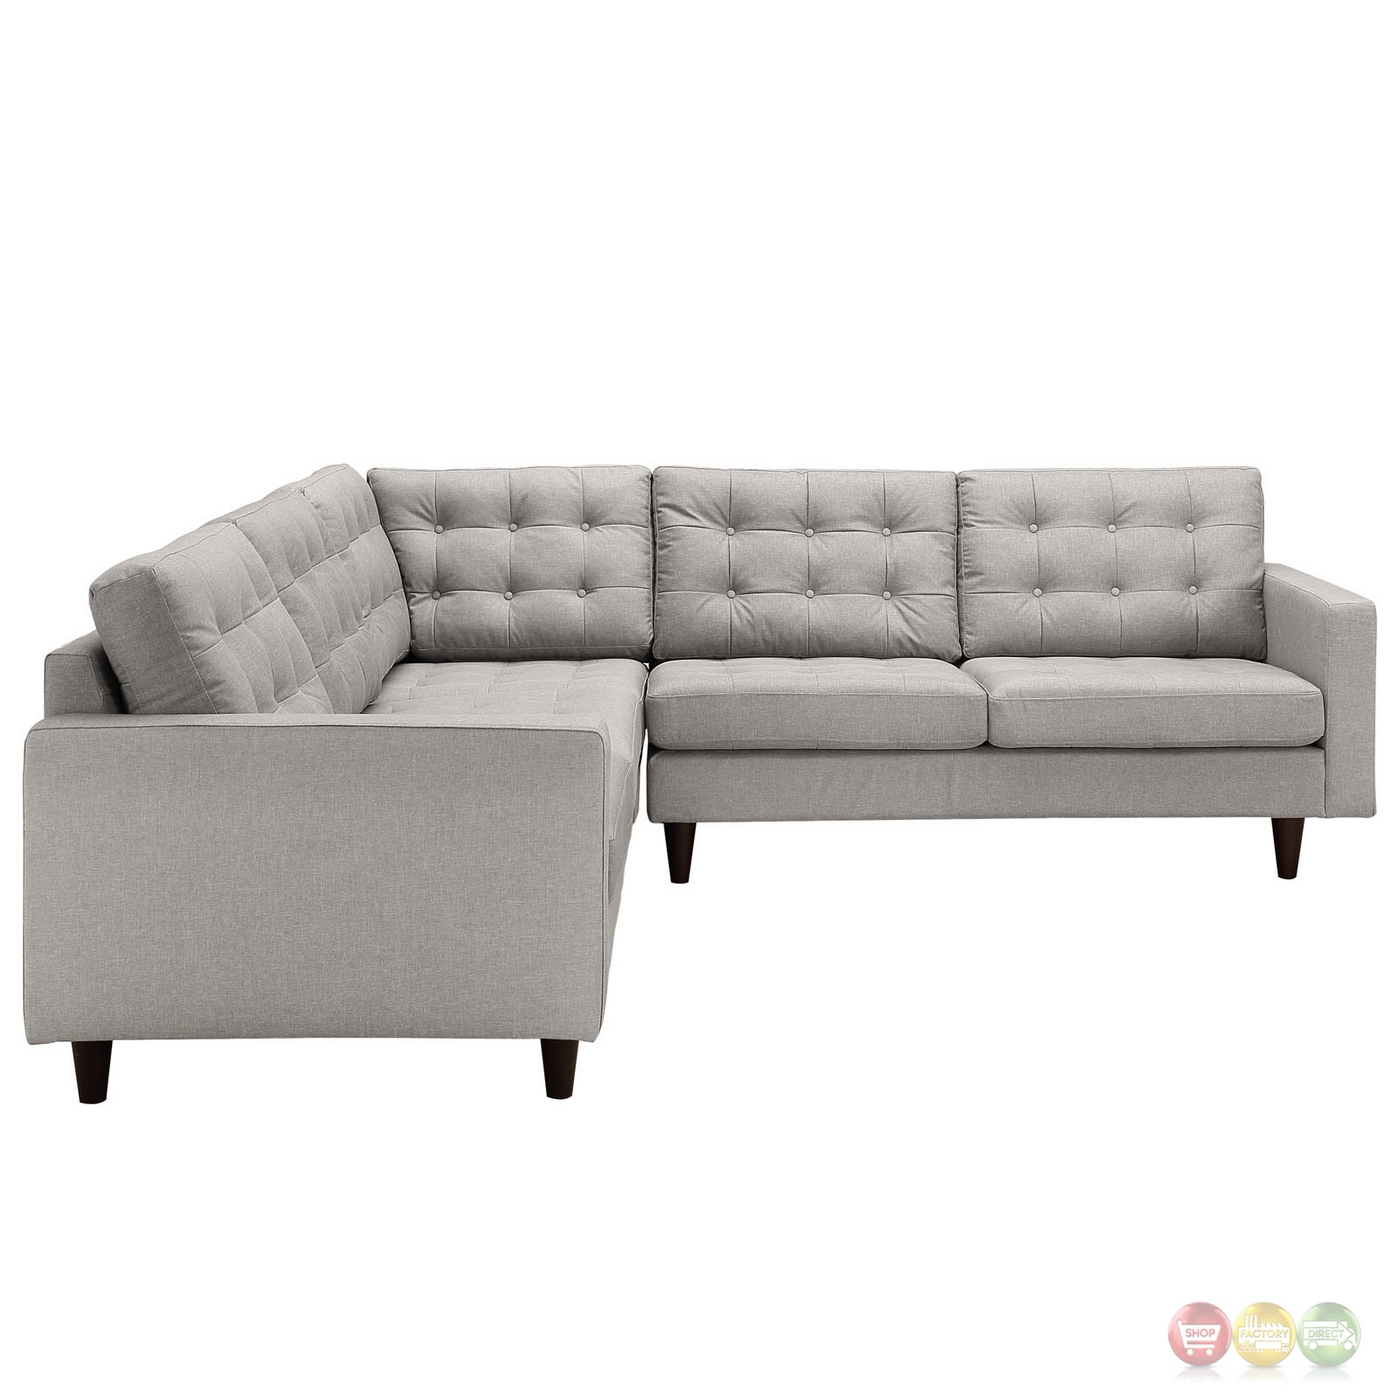 tufted sectional sofa modern chocolate tufted leather sectional rh bjgcfoundation org